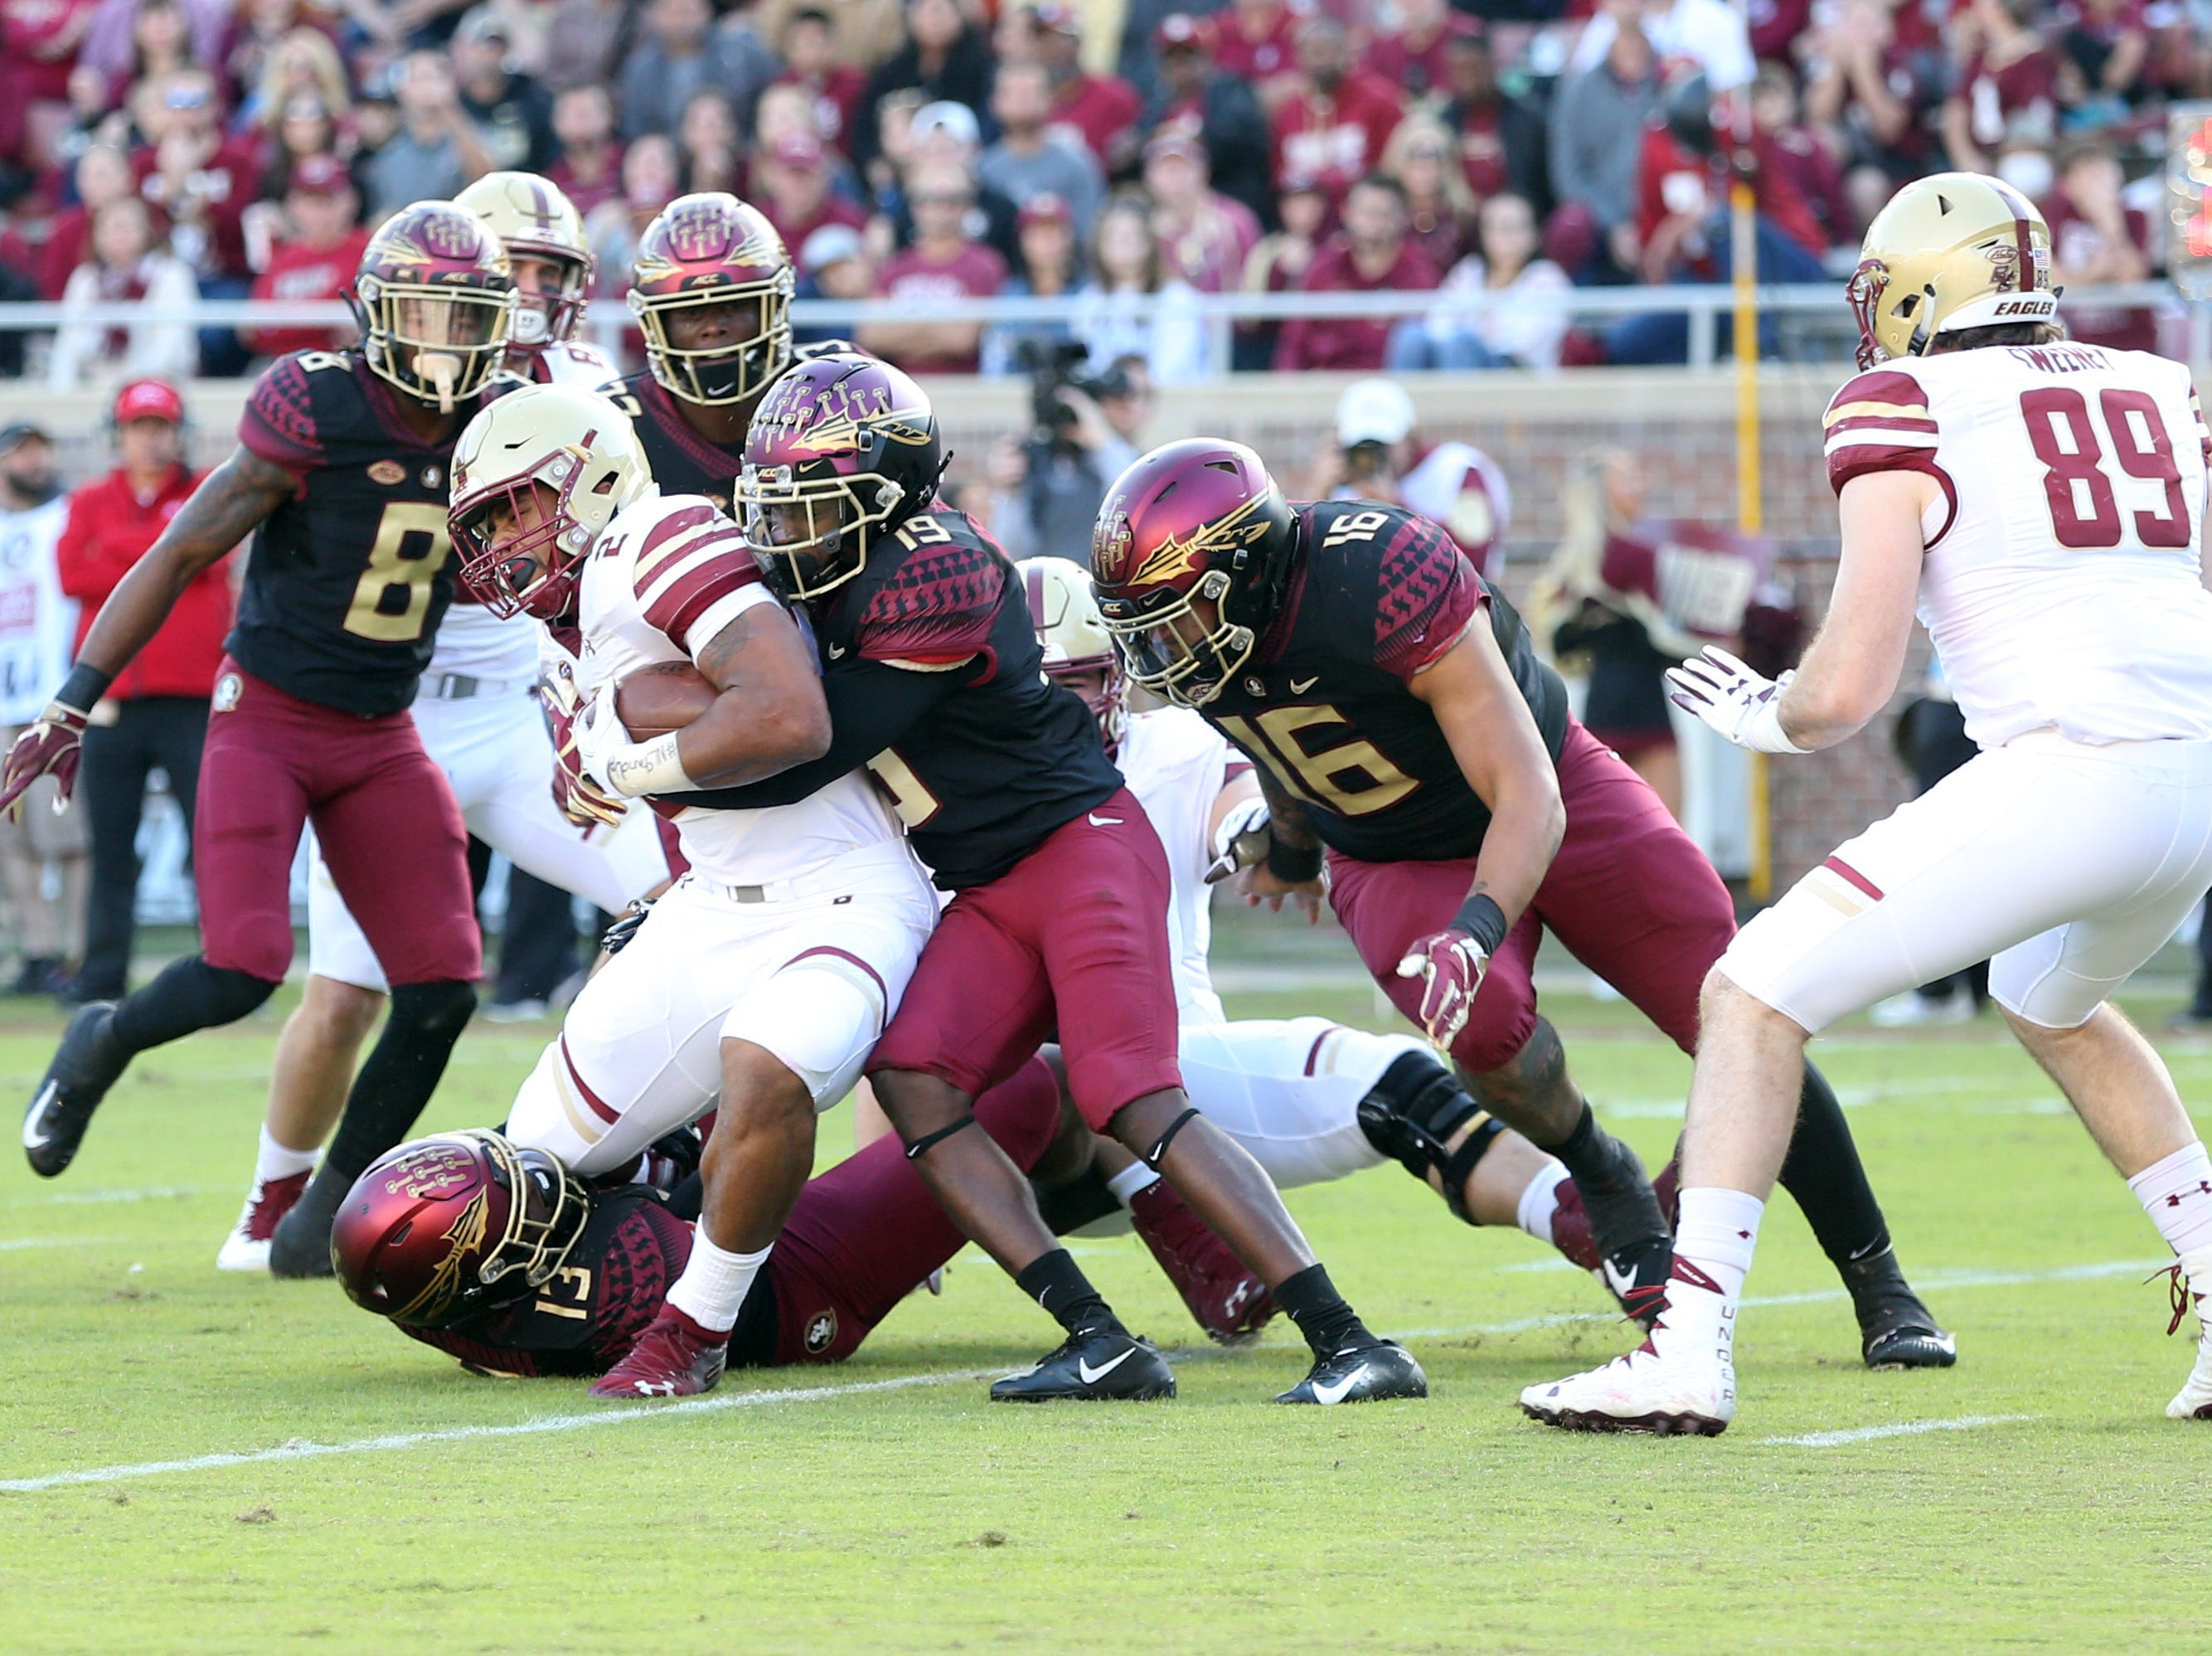 Florida State Seminoles defensive back A.J. Westbrook (19) tackles Boston College Eagles running back AJ Dillon (2 as )the Florida State Seminoles face off against the Boston College Eagles at Doak S. Campbell Stadium, Saturday, Nov. 17, 2018.